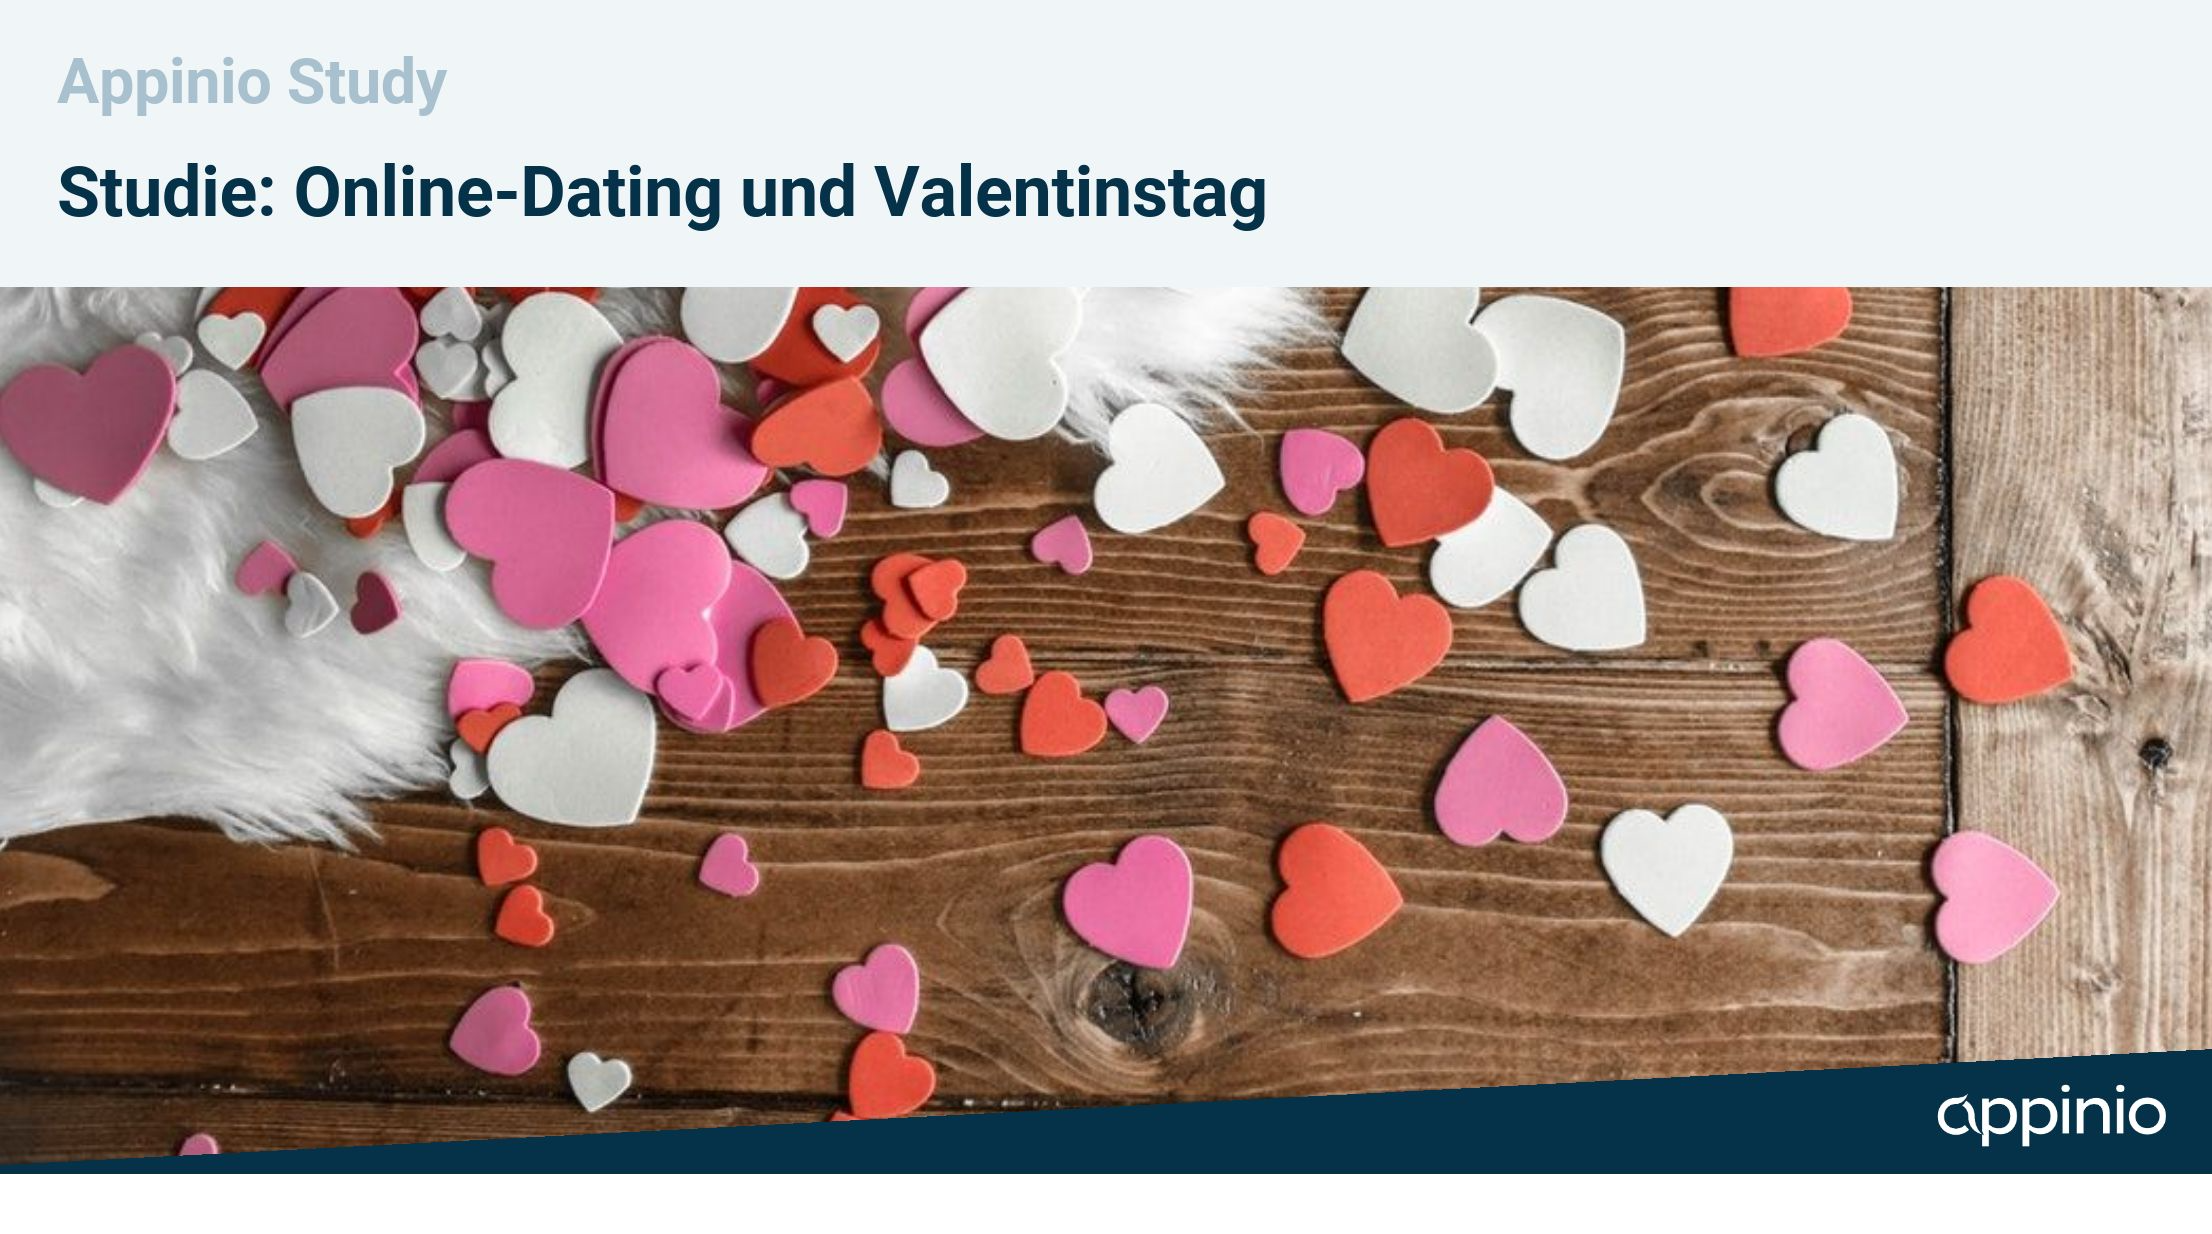 Abendliches Standard-Speed-Dating